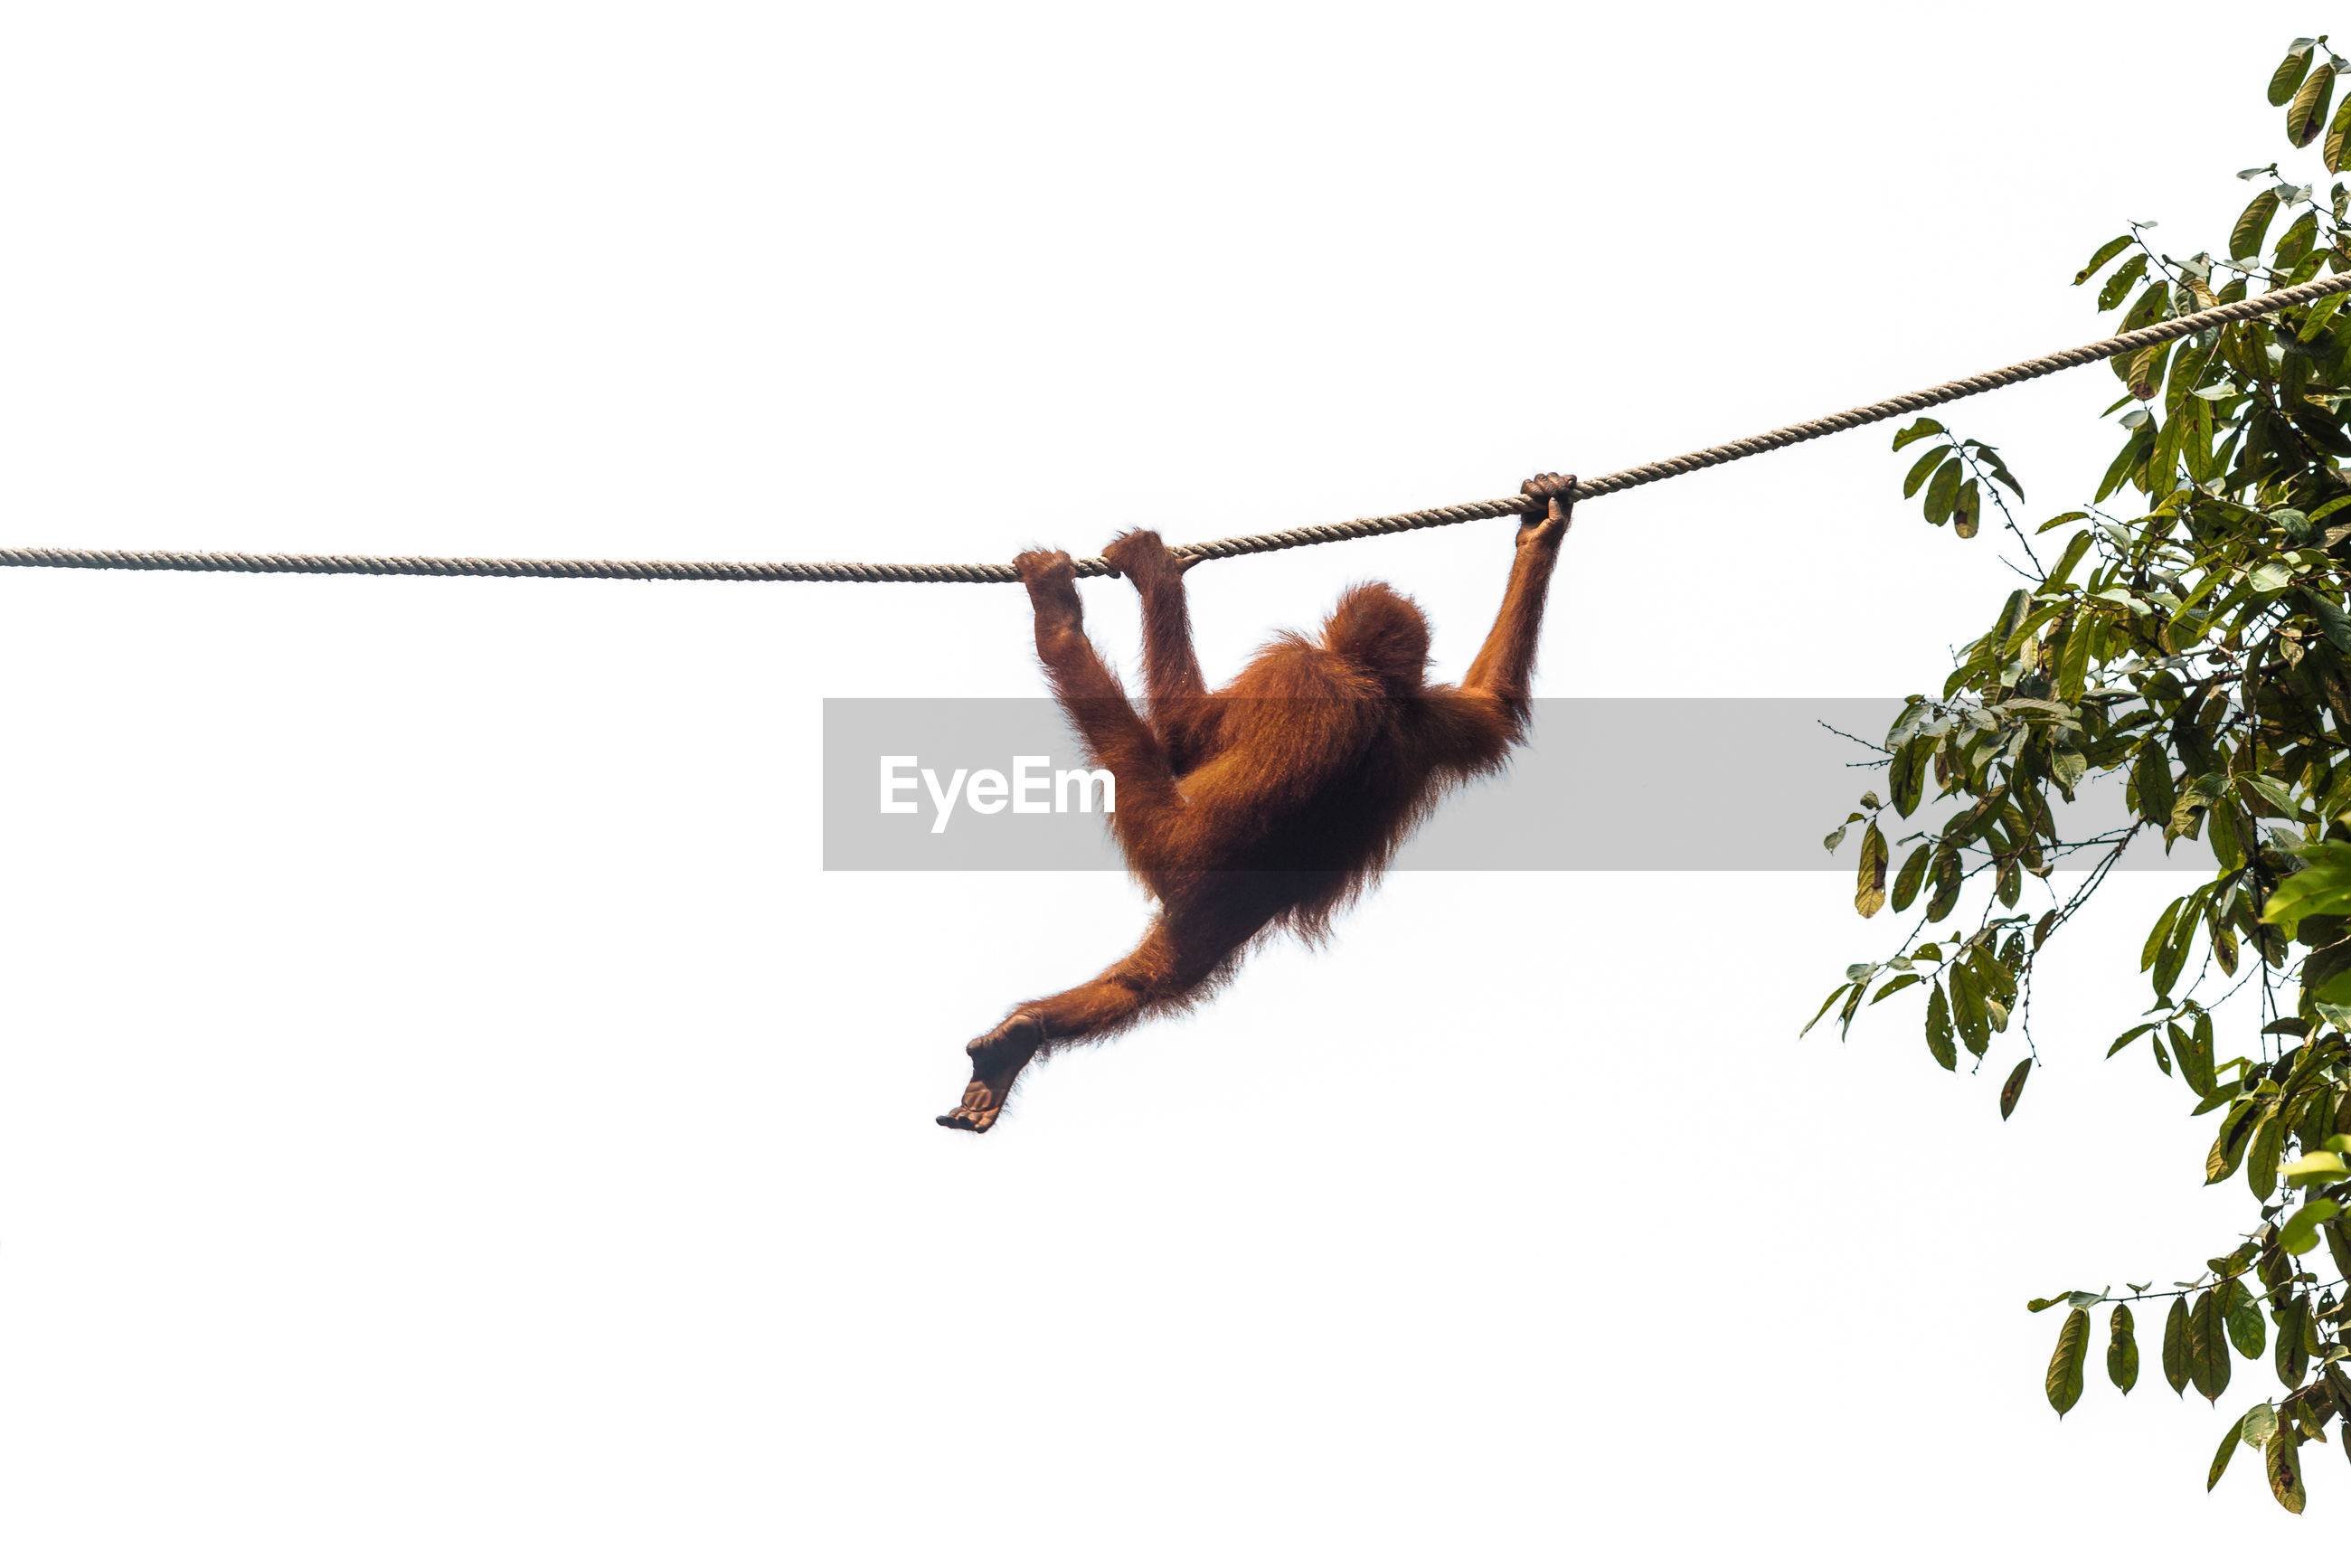 LOW ANGLE VIEW OF MONKEY HANGING ON BRANCH AGAINST SKY